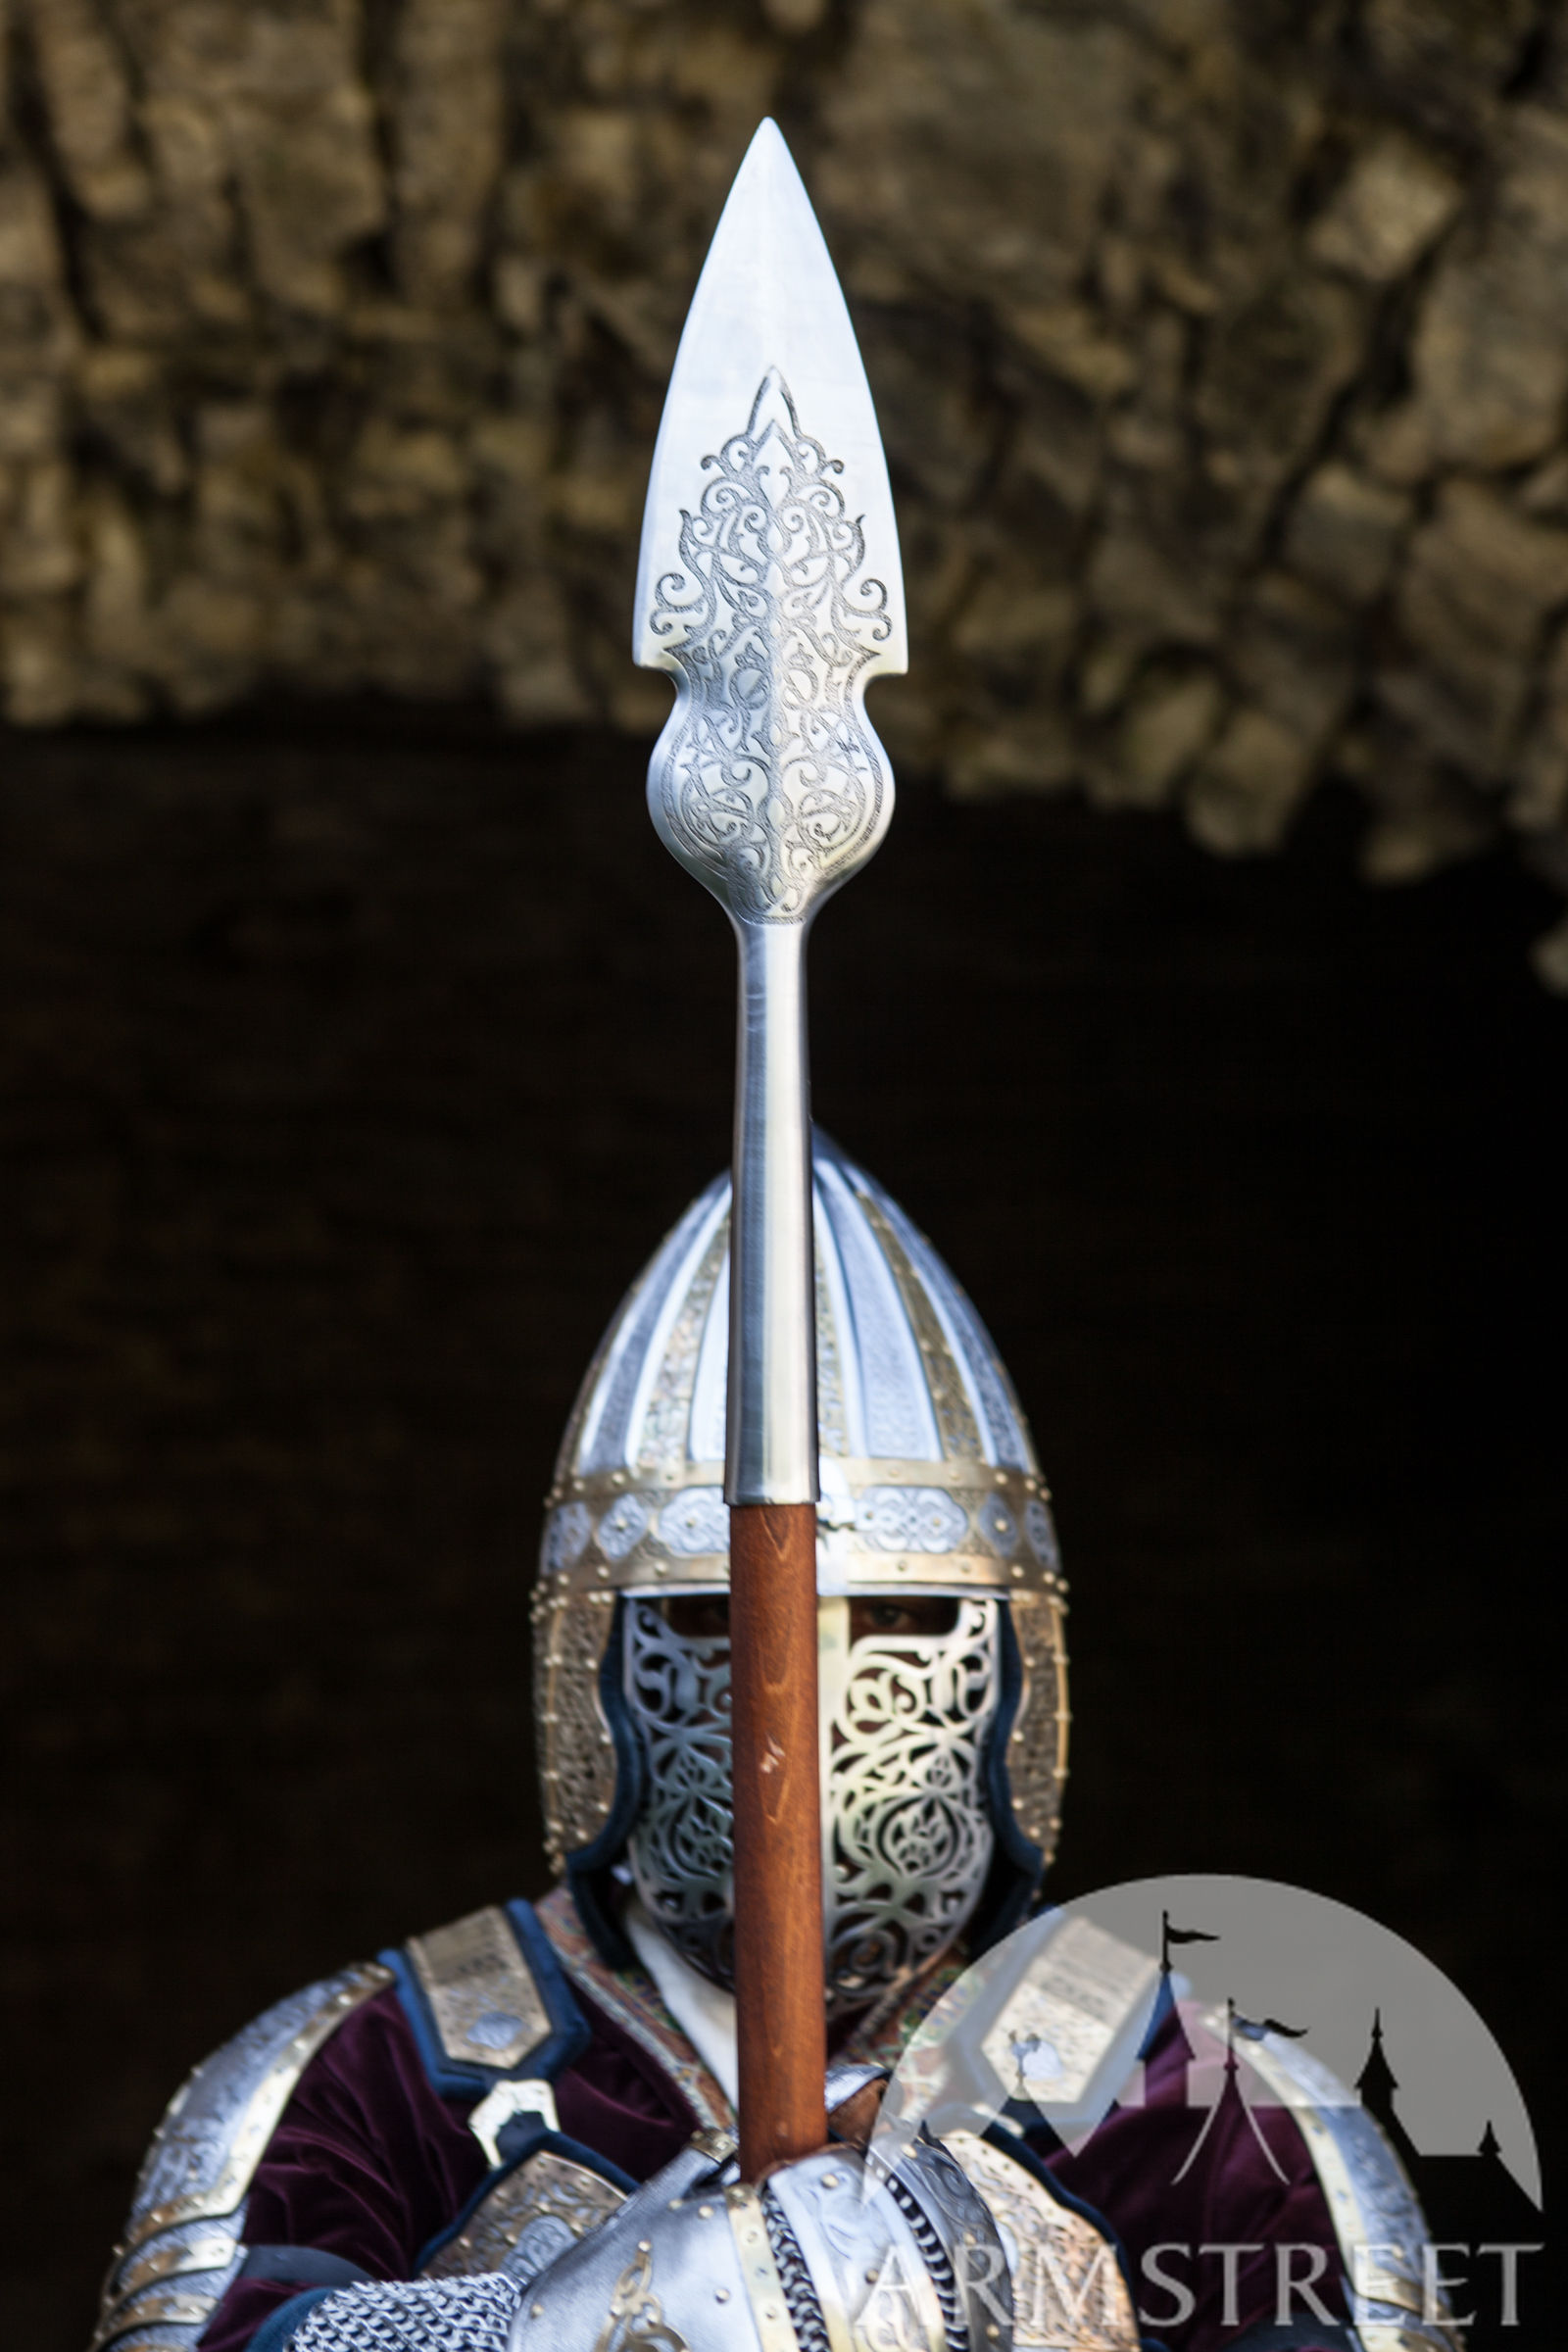 Stainless Spearhead King of the East Available in stainless  by medieval store ArmStreet